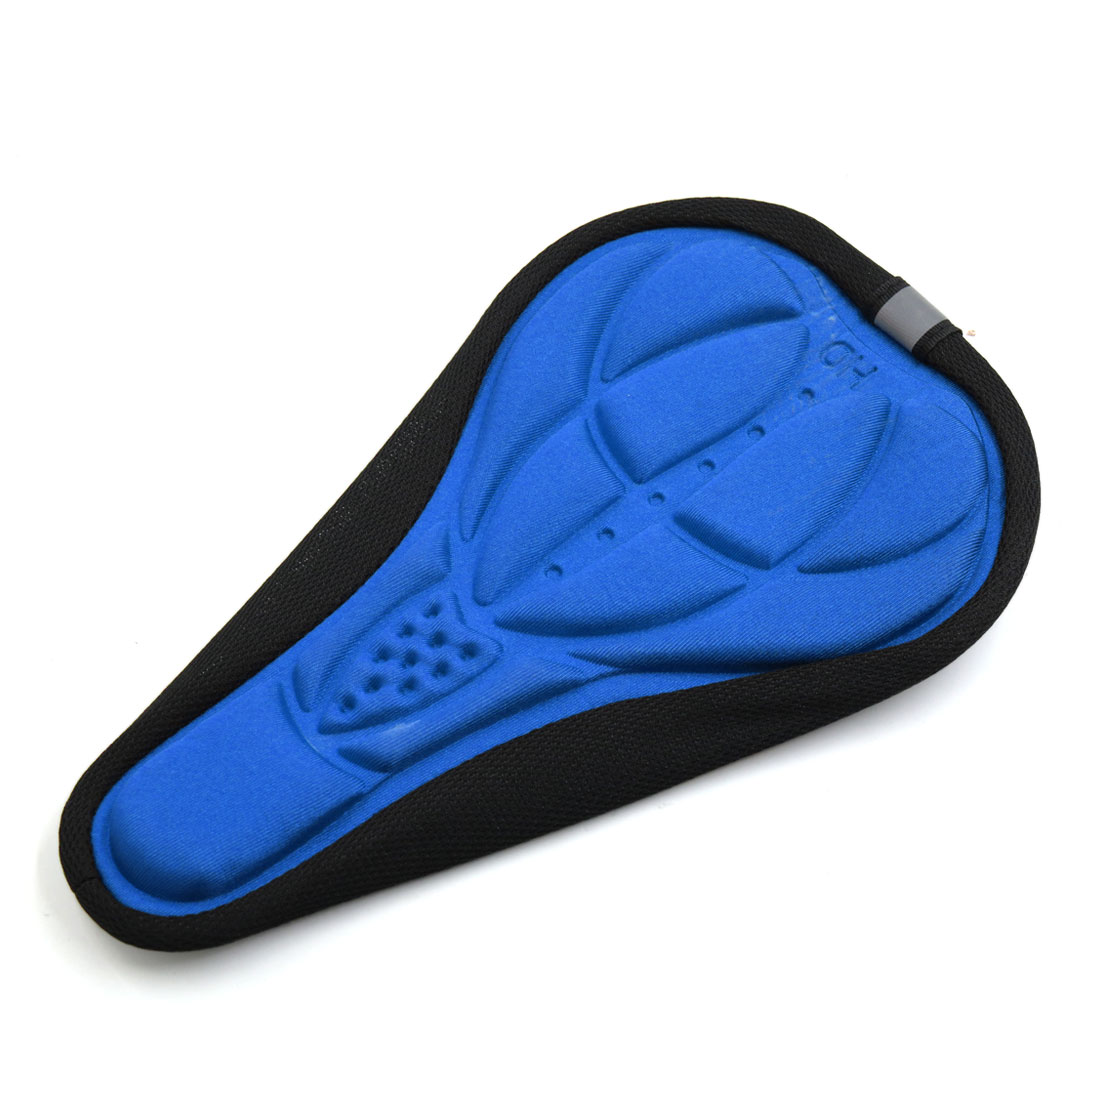 3D Silicone Pad Seat Saddle Cover Soft Cushion Blue for Car MTB Bike Bicycle